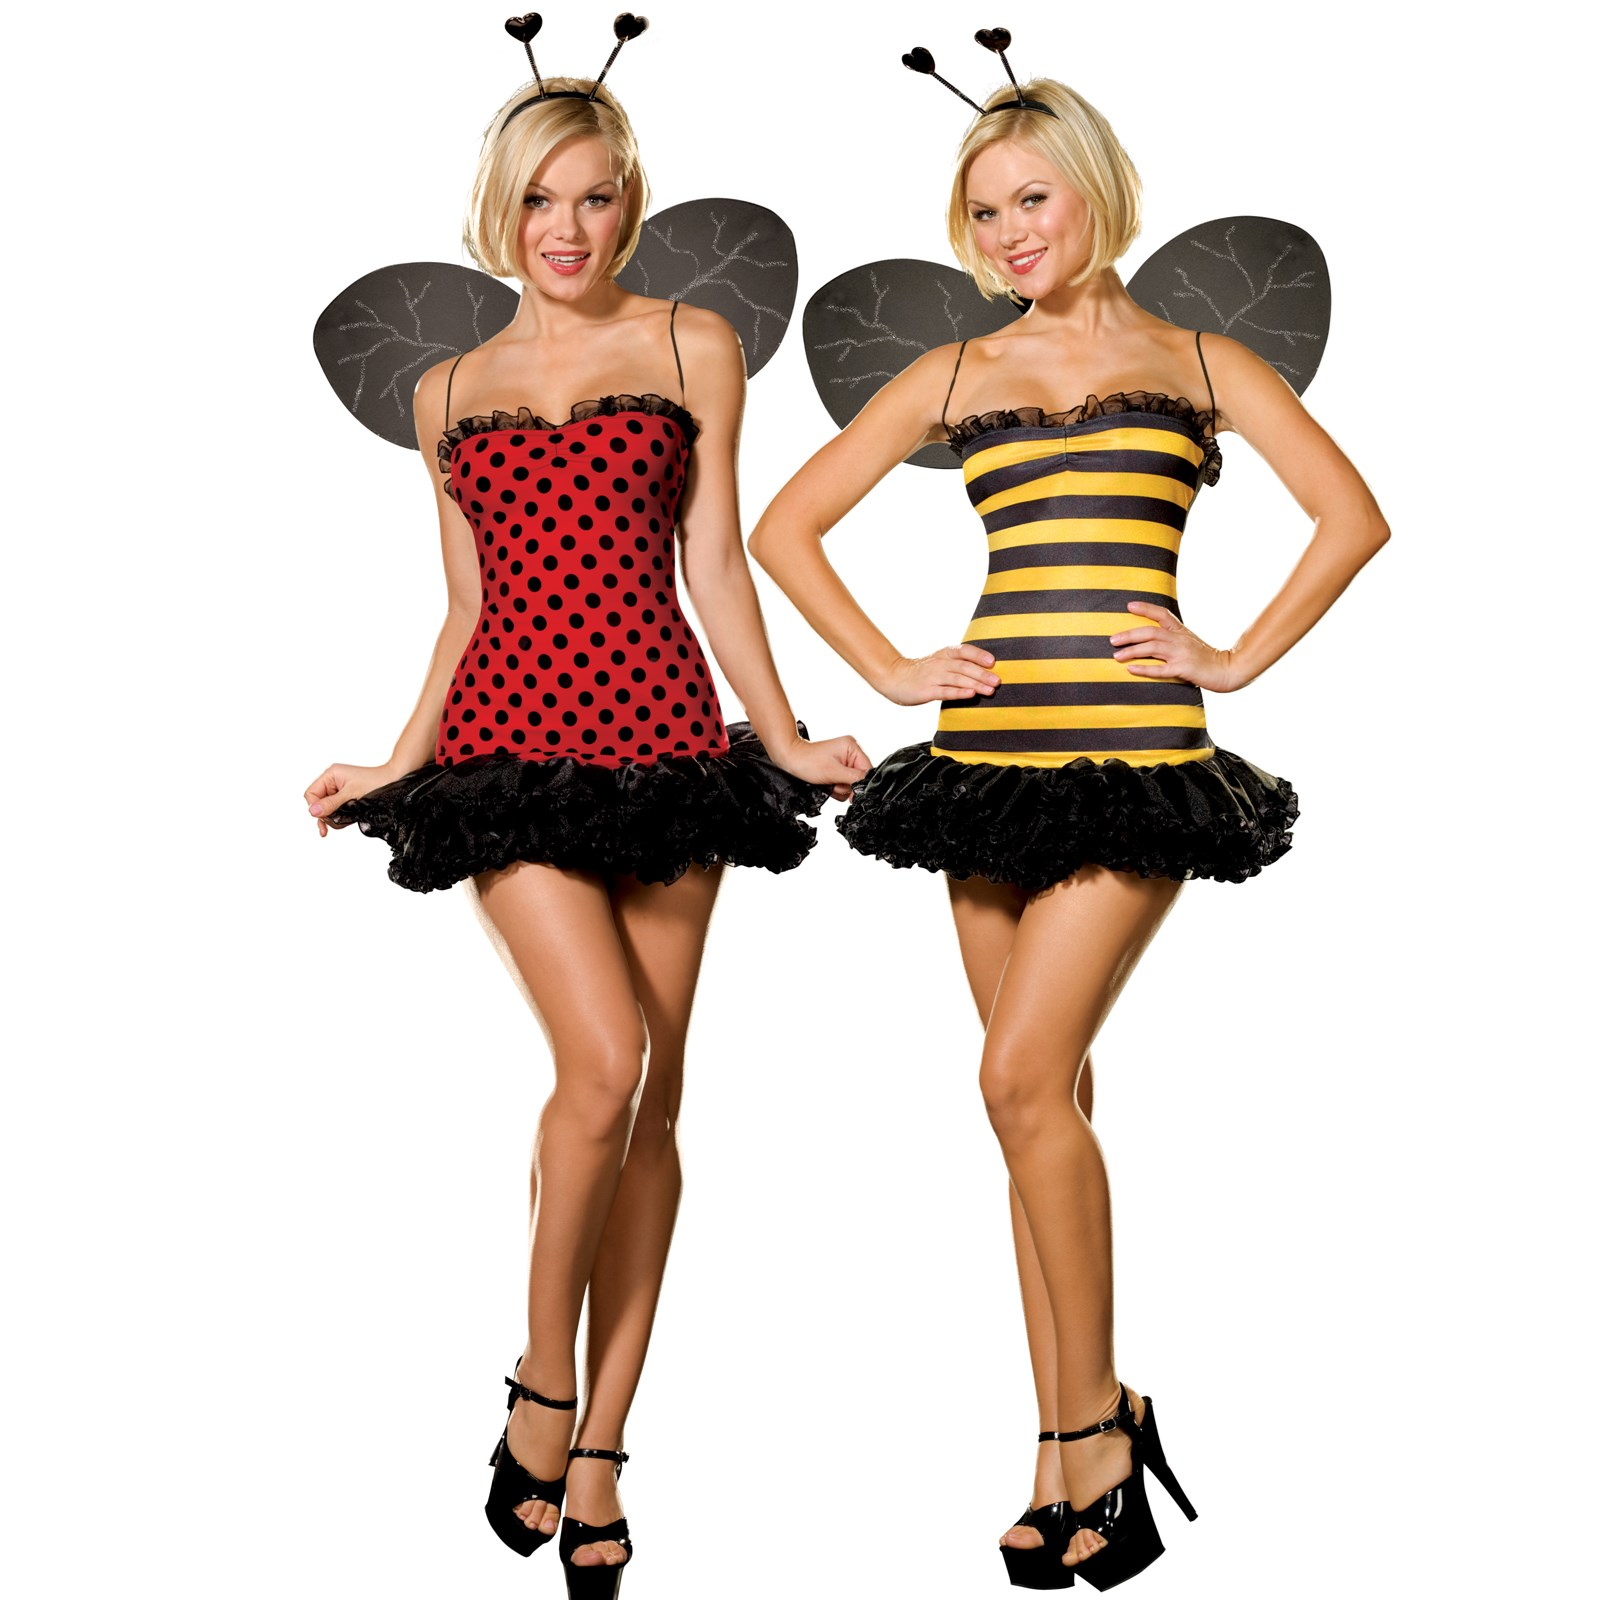 Image of Buggin' Out Adult Costume